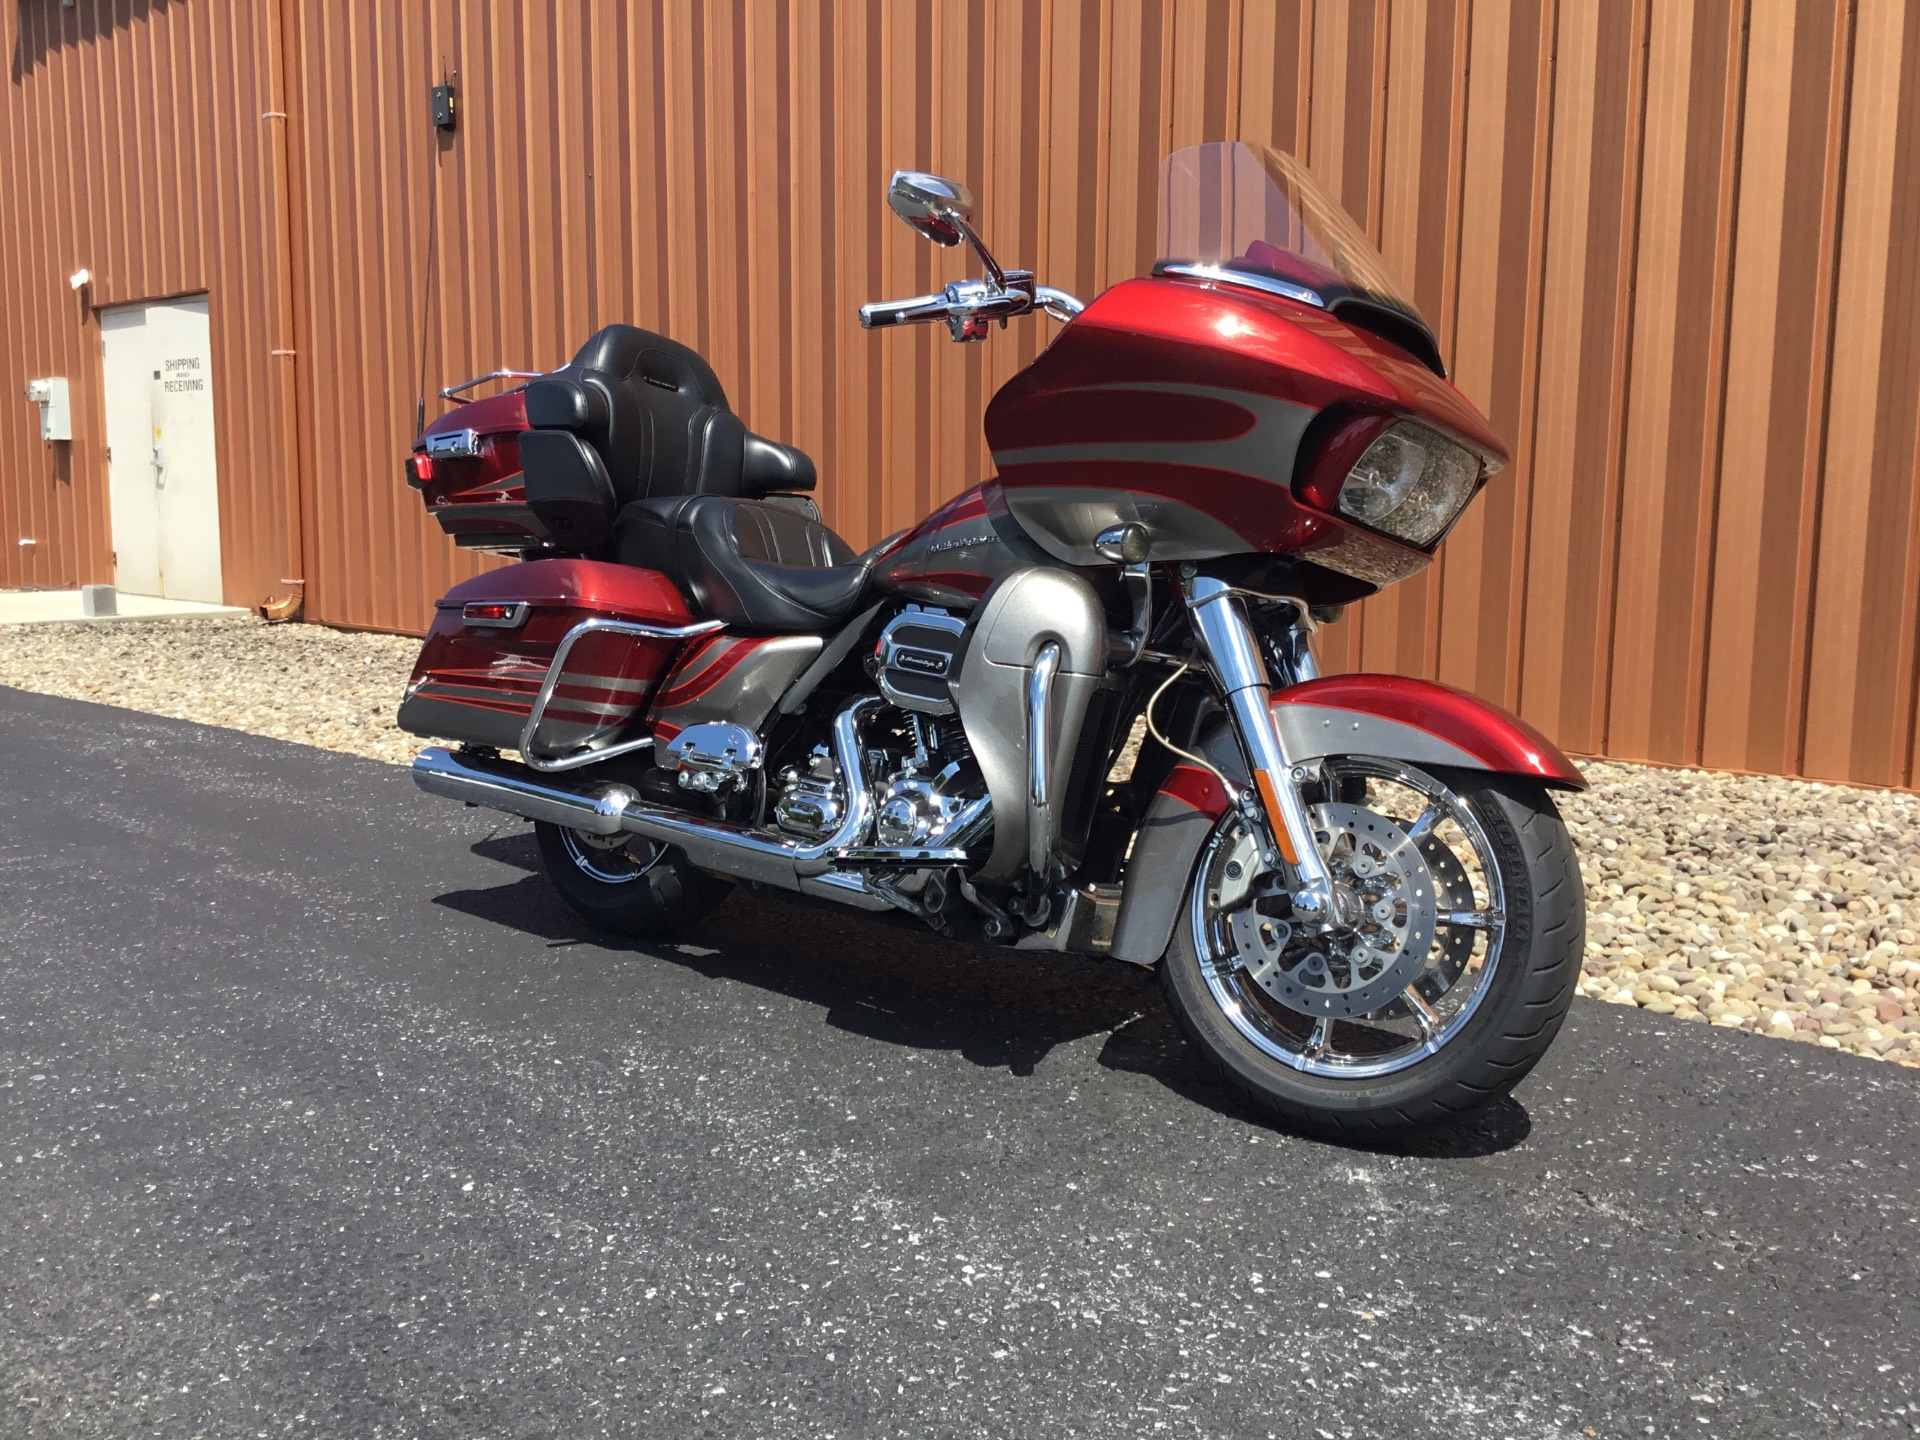 2016 Harley-Davidson CVO Road Glide Ultra in Harrisburg, Pennsylvania - Photo 2